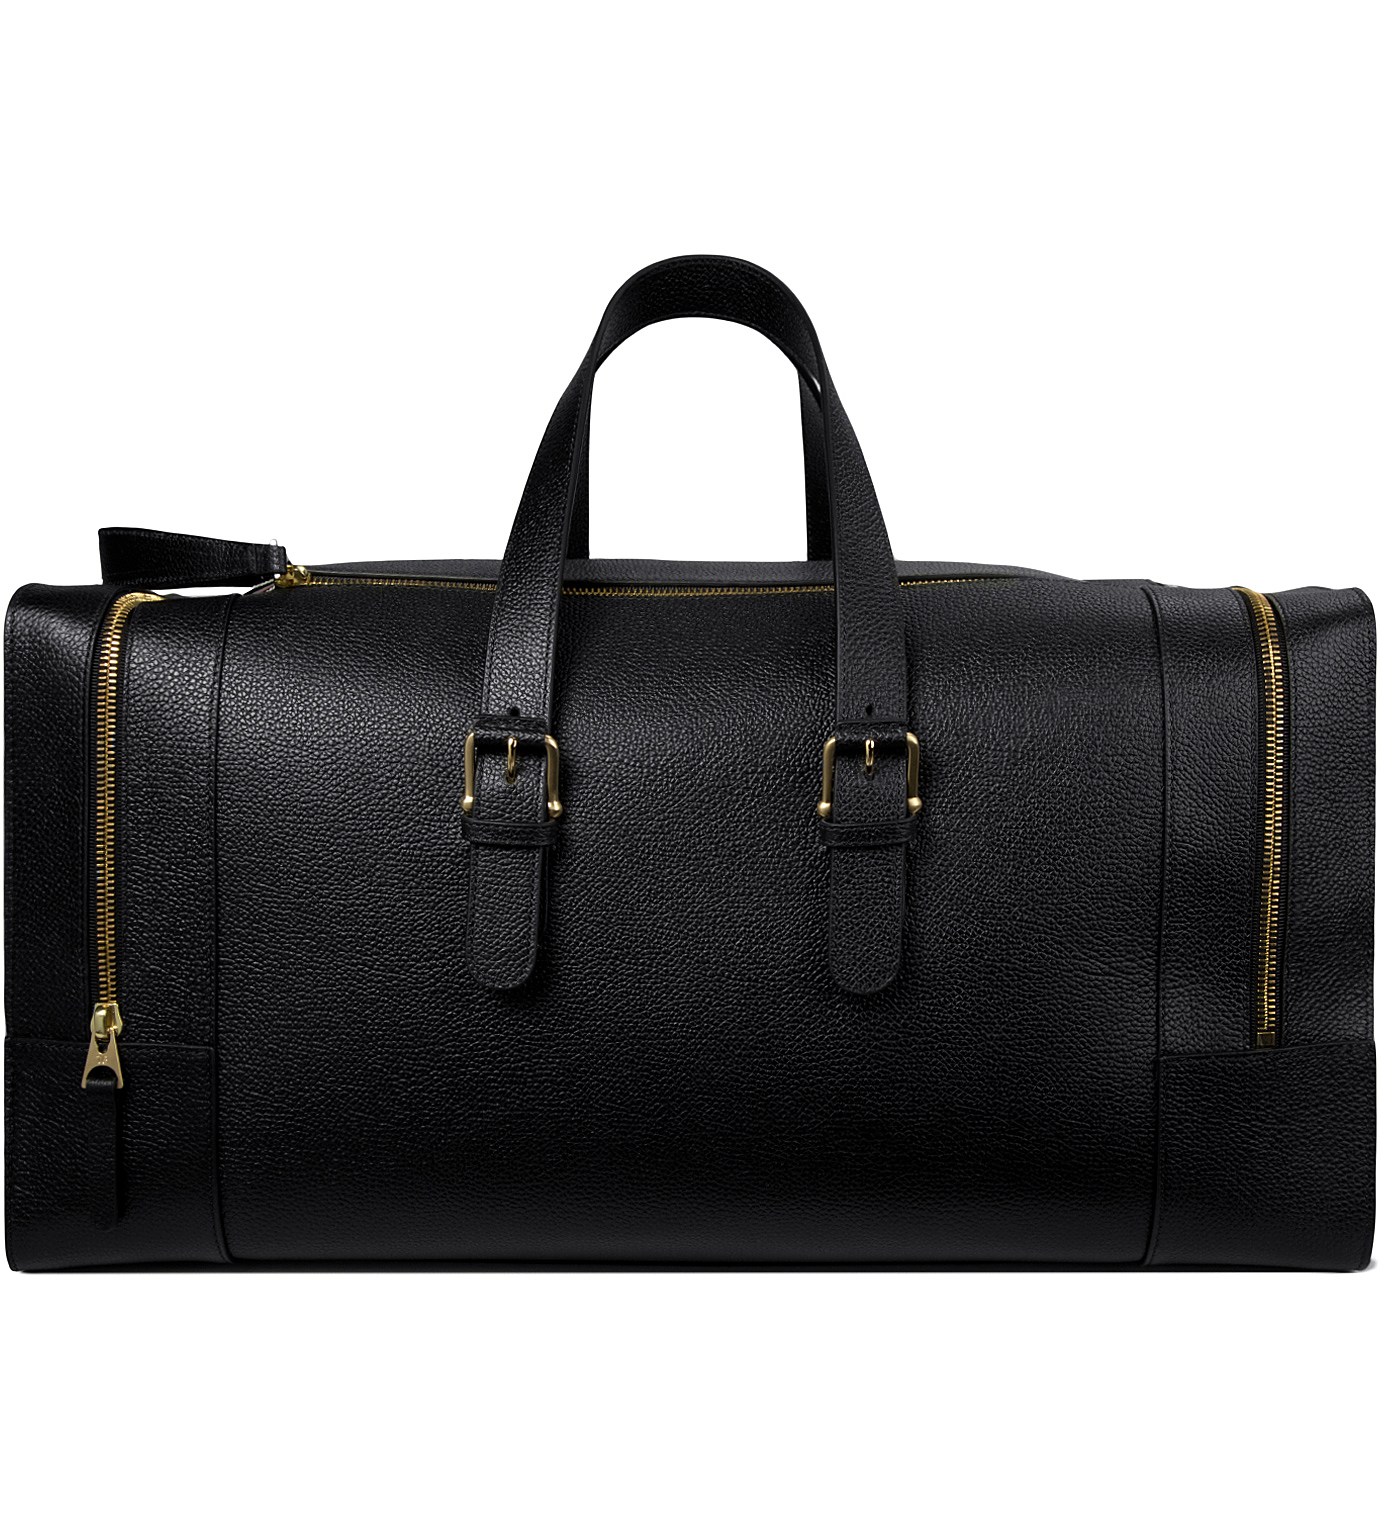 Thom Browne Black Grained Leather Duffle Bag In Black For